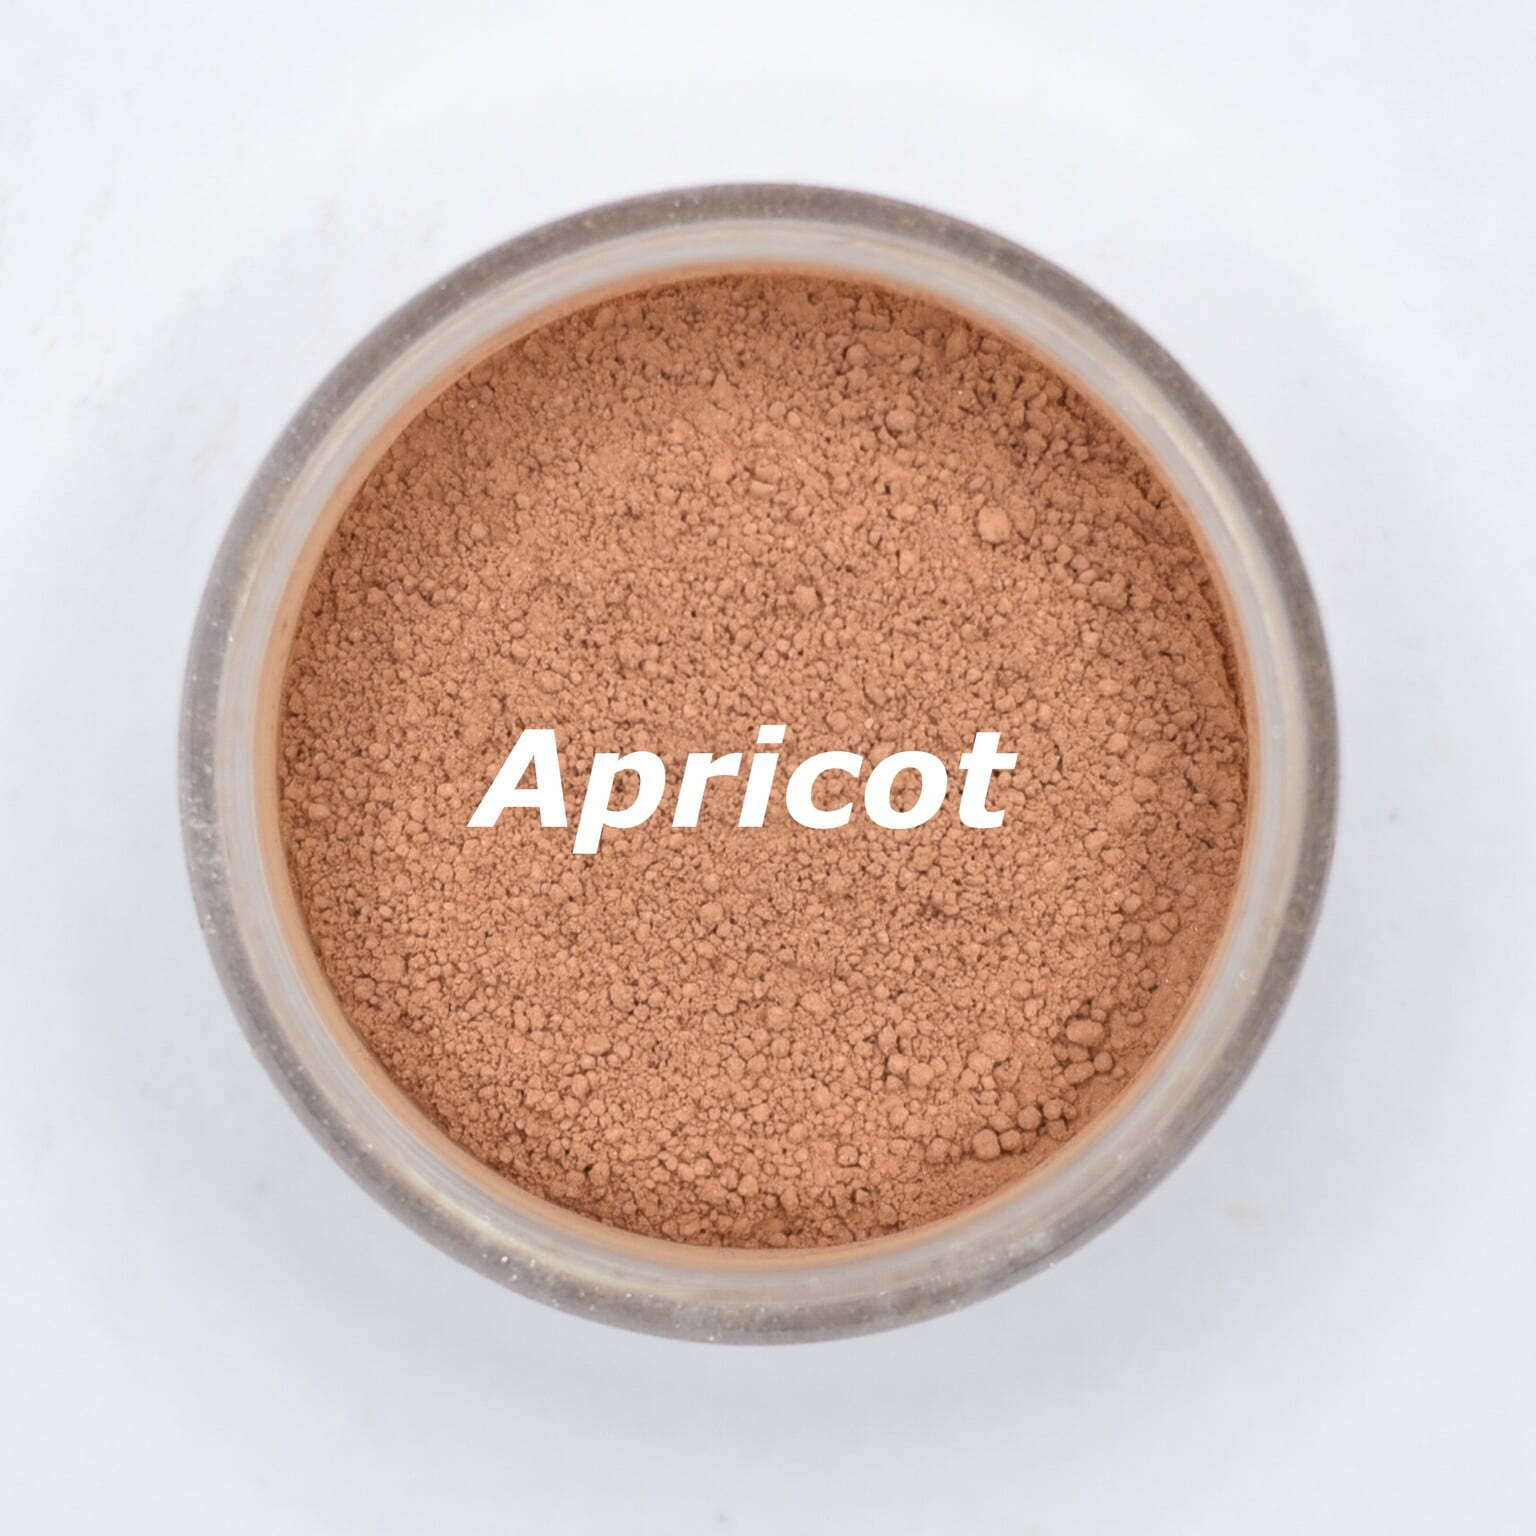 apricot foundation makeup